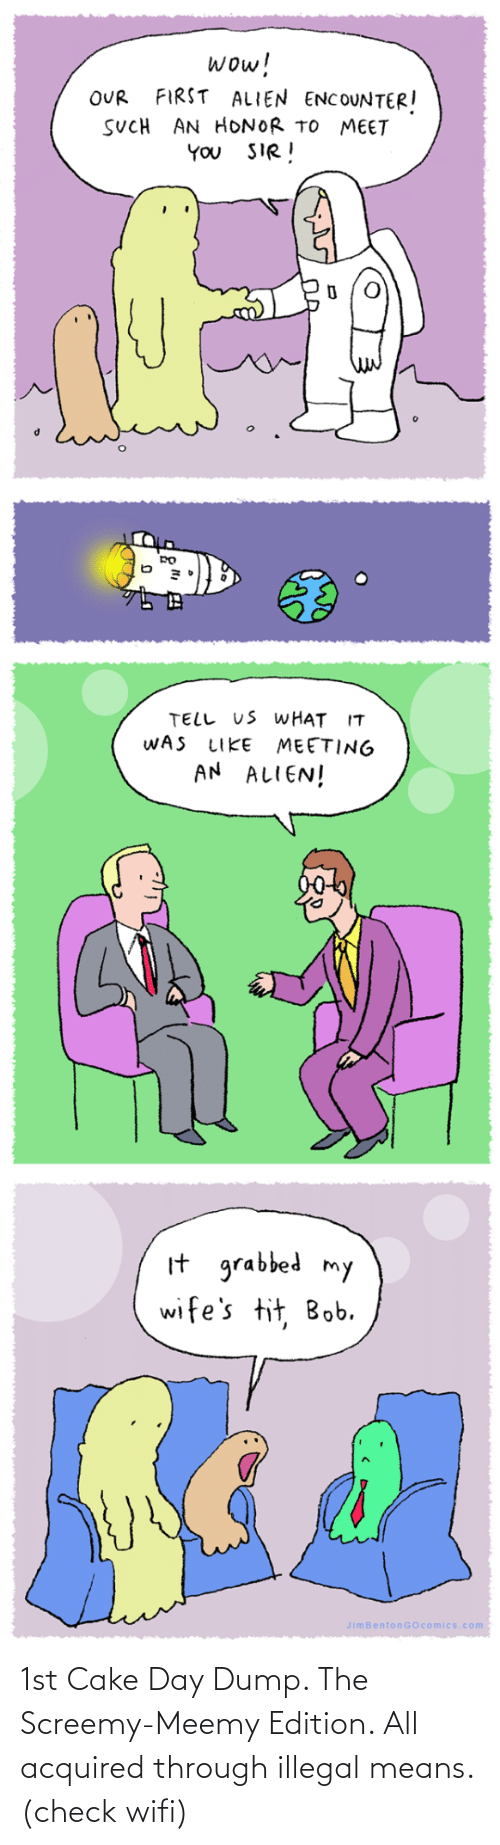 Encounter: wow!  FIRST ALIEN ENCOUNTER!  OUR  SUCH AN HONOR TO MEET  YOU SIR!  TELL US WHAT IT  WAS  MEETING  AN ALIEN!  LIKE  It grabbed my  wife's tit, Bob.  JimBentonGOcomics.com 1st Cake Day Dump. The Screemy-Meemy Edition. All acquired through illegal means. (check wifi)